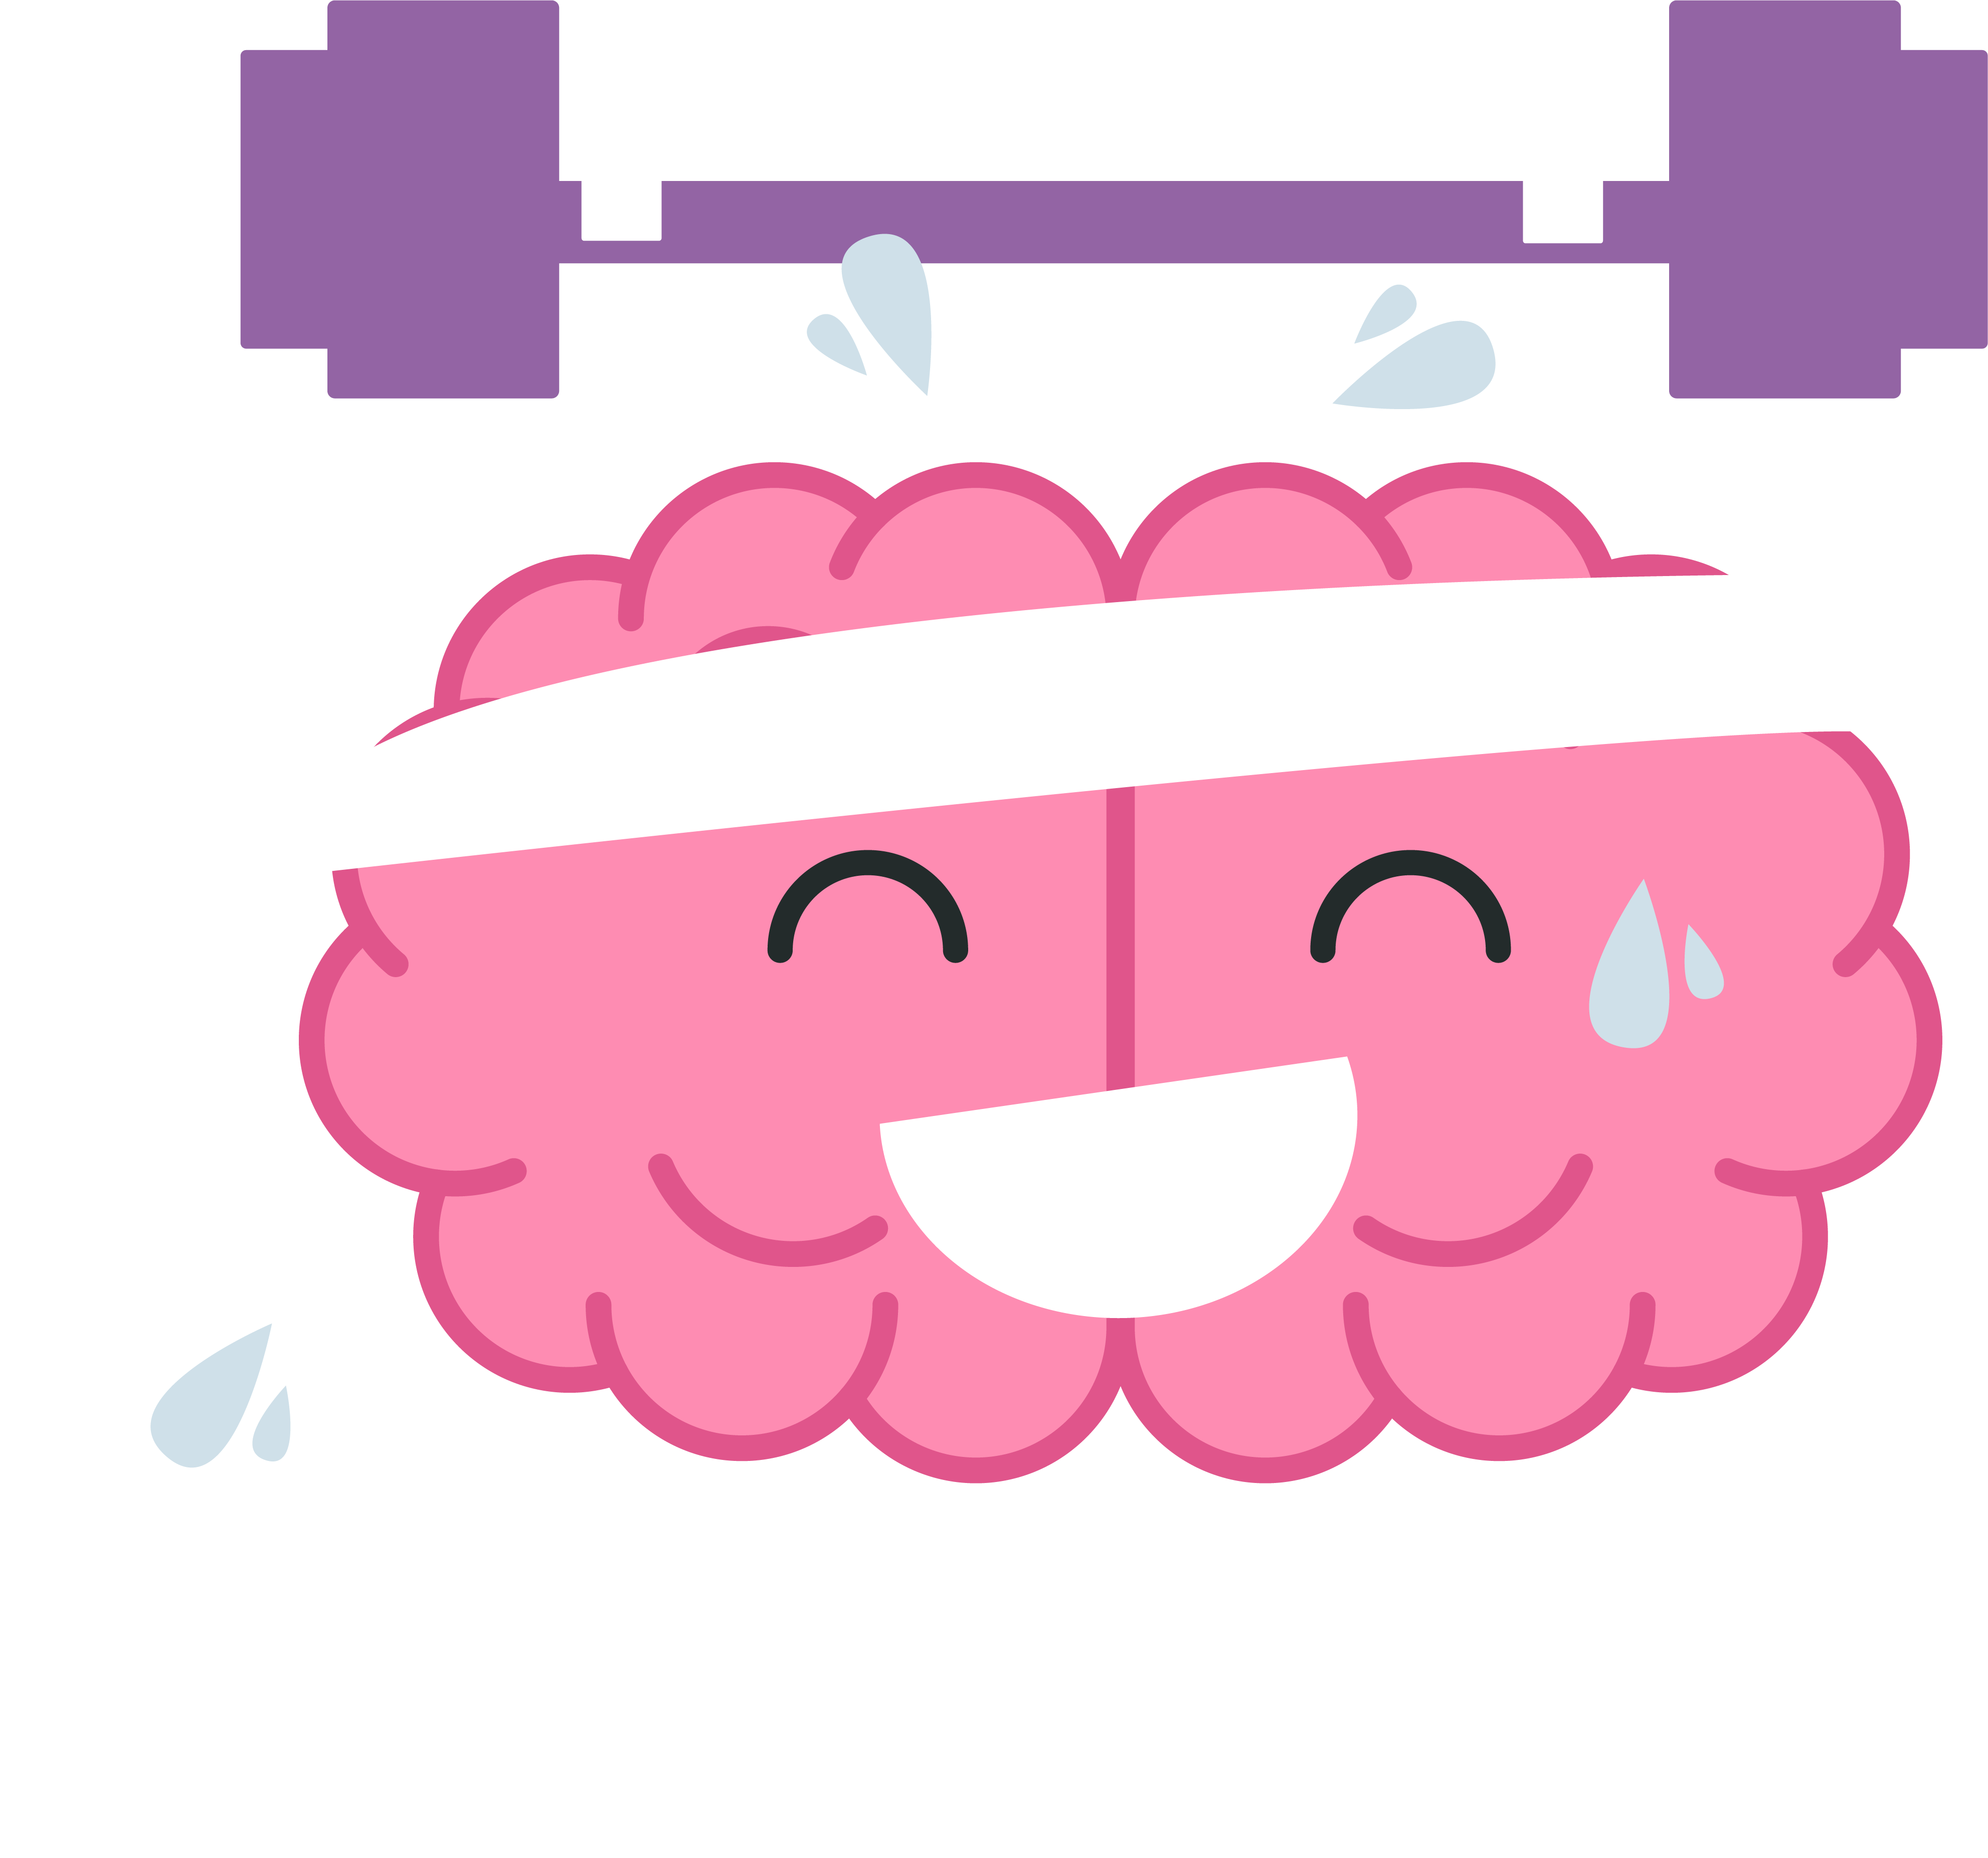 small-normal-brain-kids-learning-apps-for-children-and-toddler-on-tablets-ios-ipad-playstore-android-mobile-games-training-application-educational-online-brain-games-6-and-up-autism